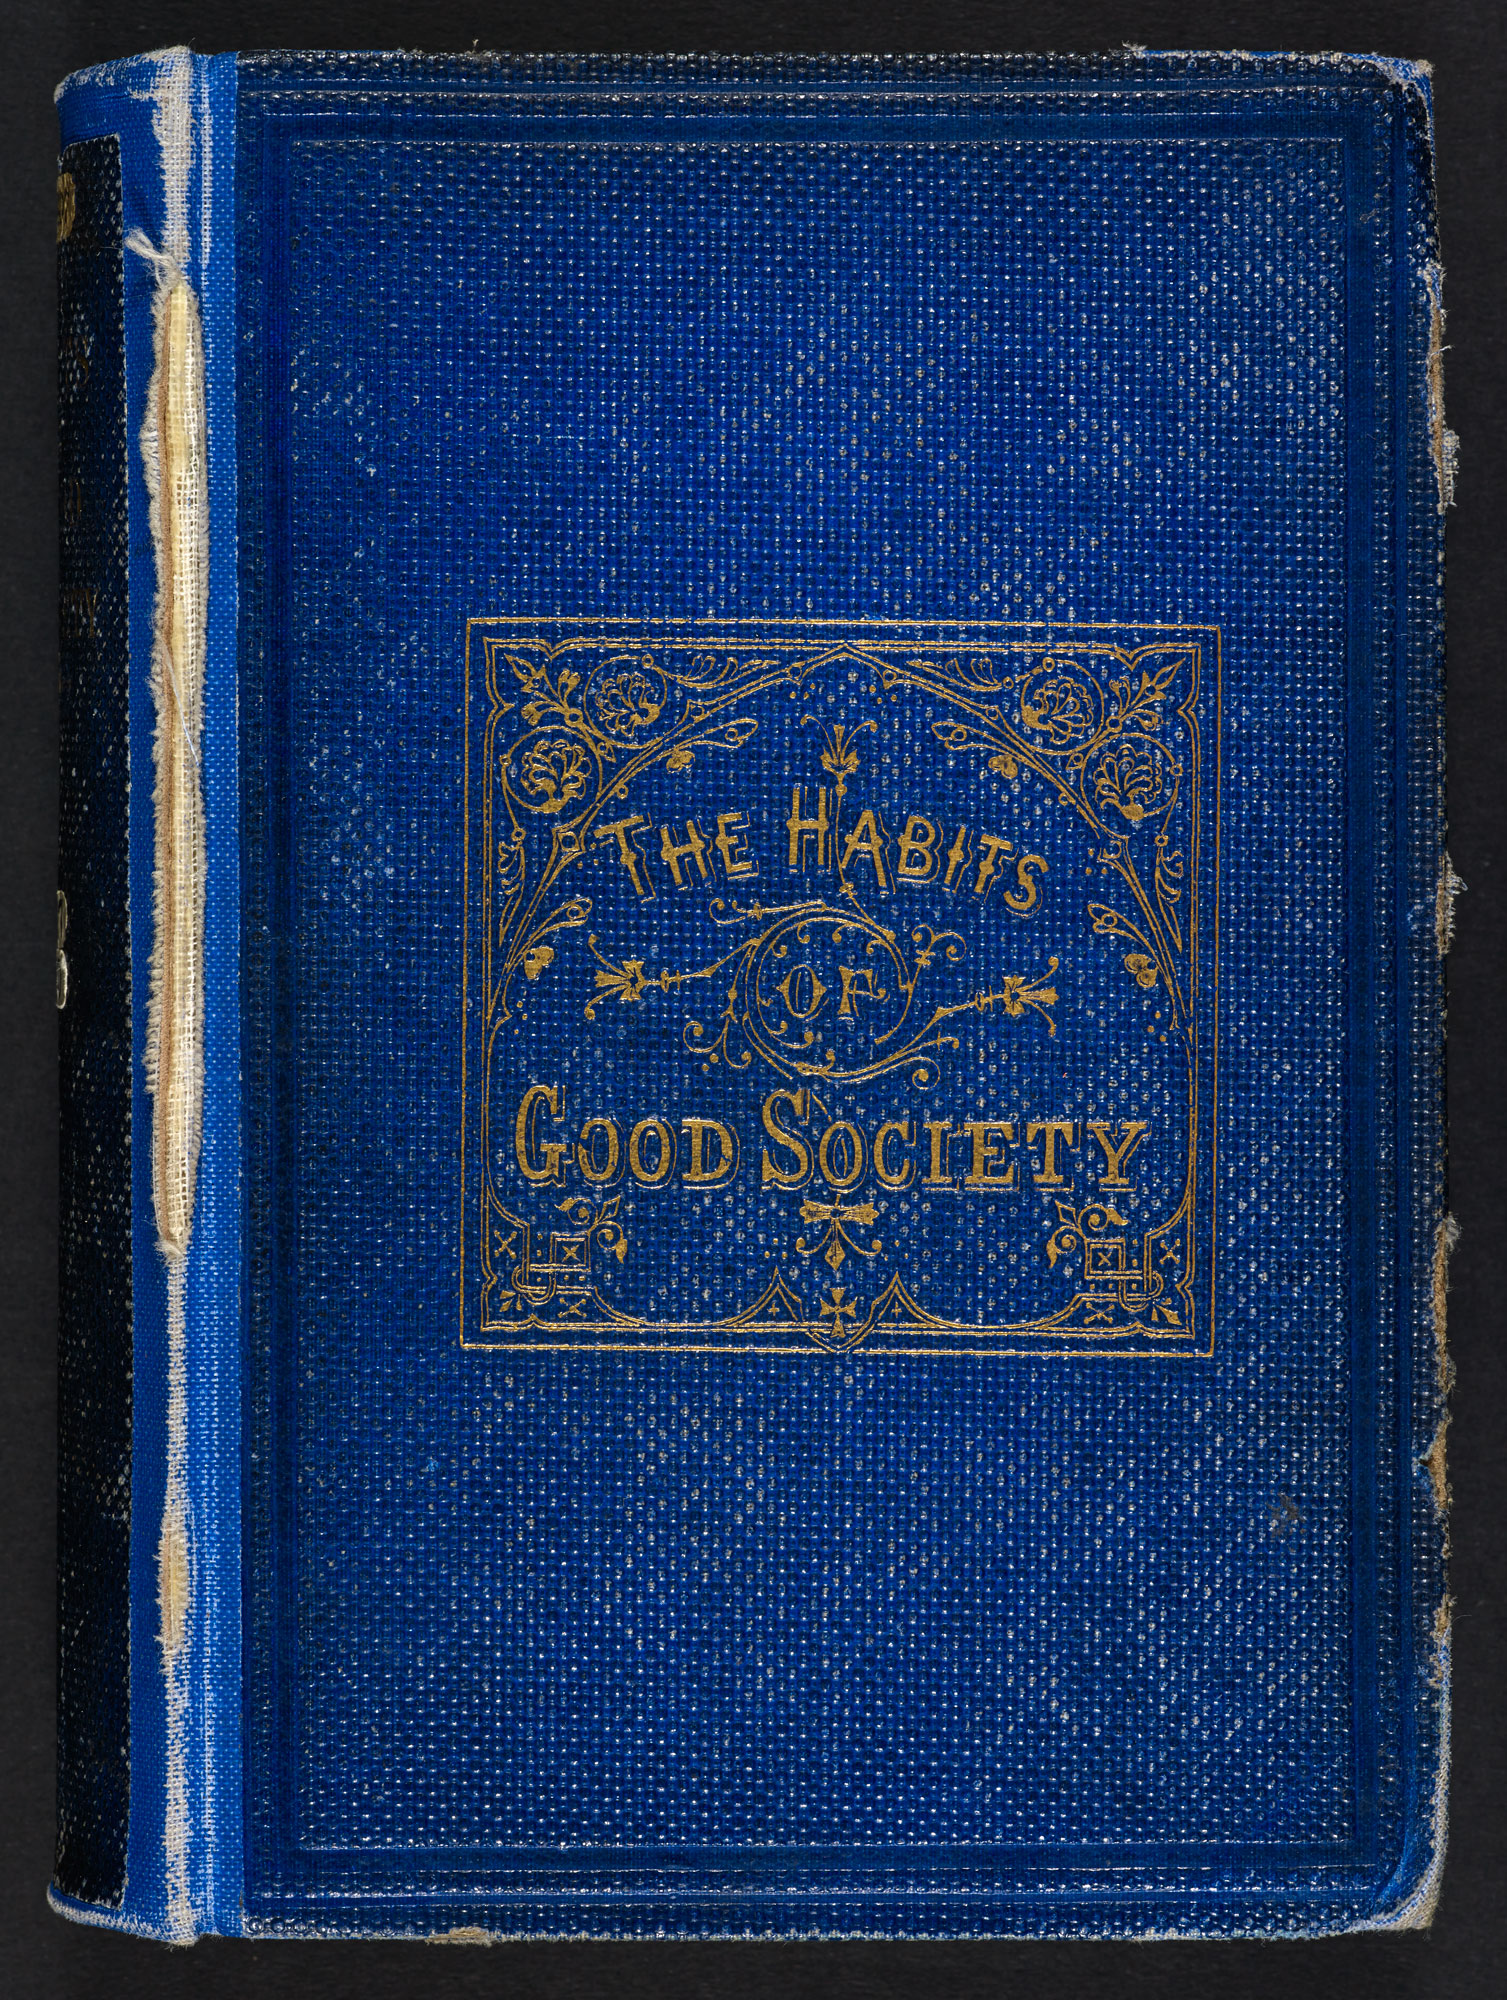 The Habits of Good Society [page: front cover]